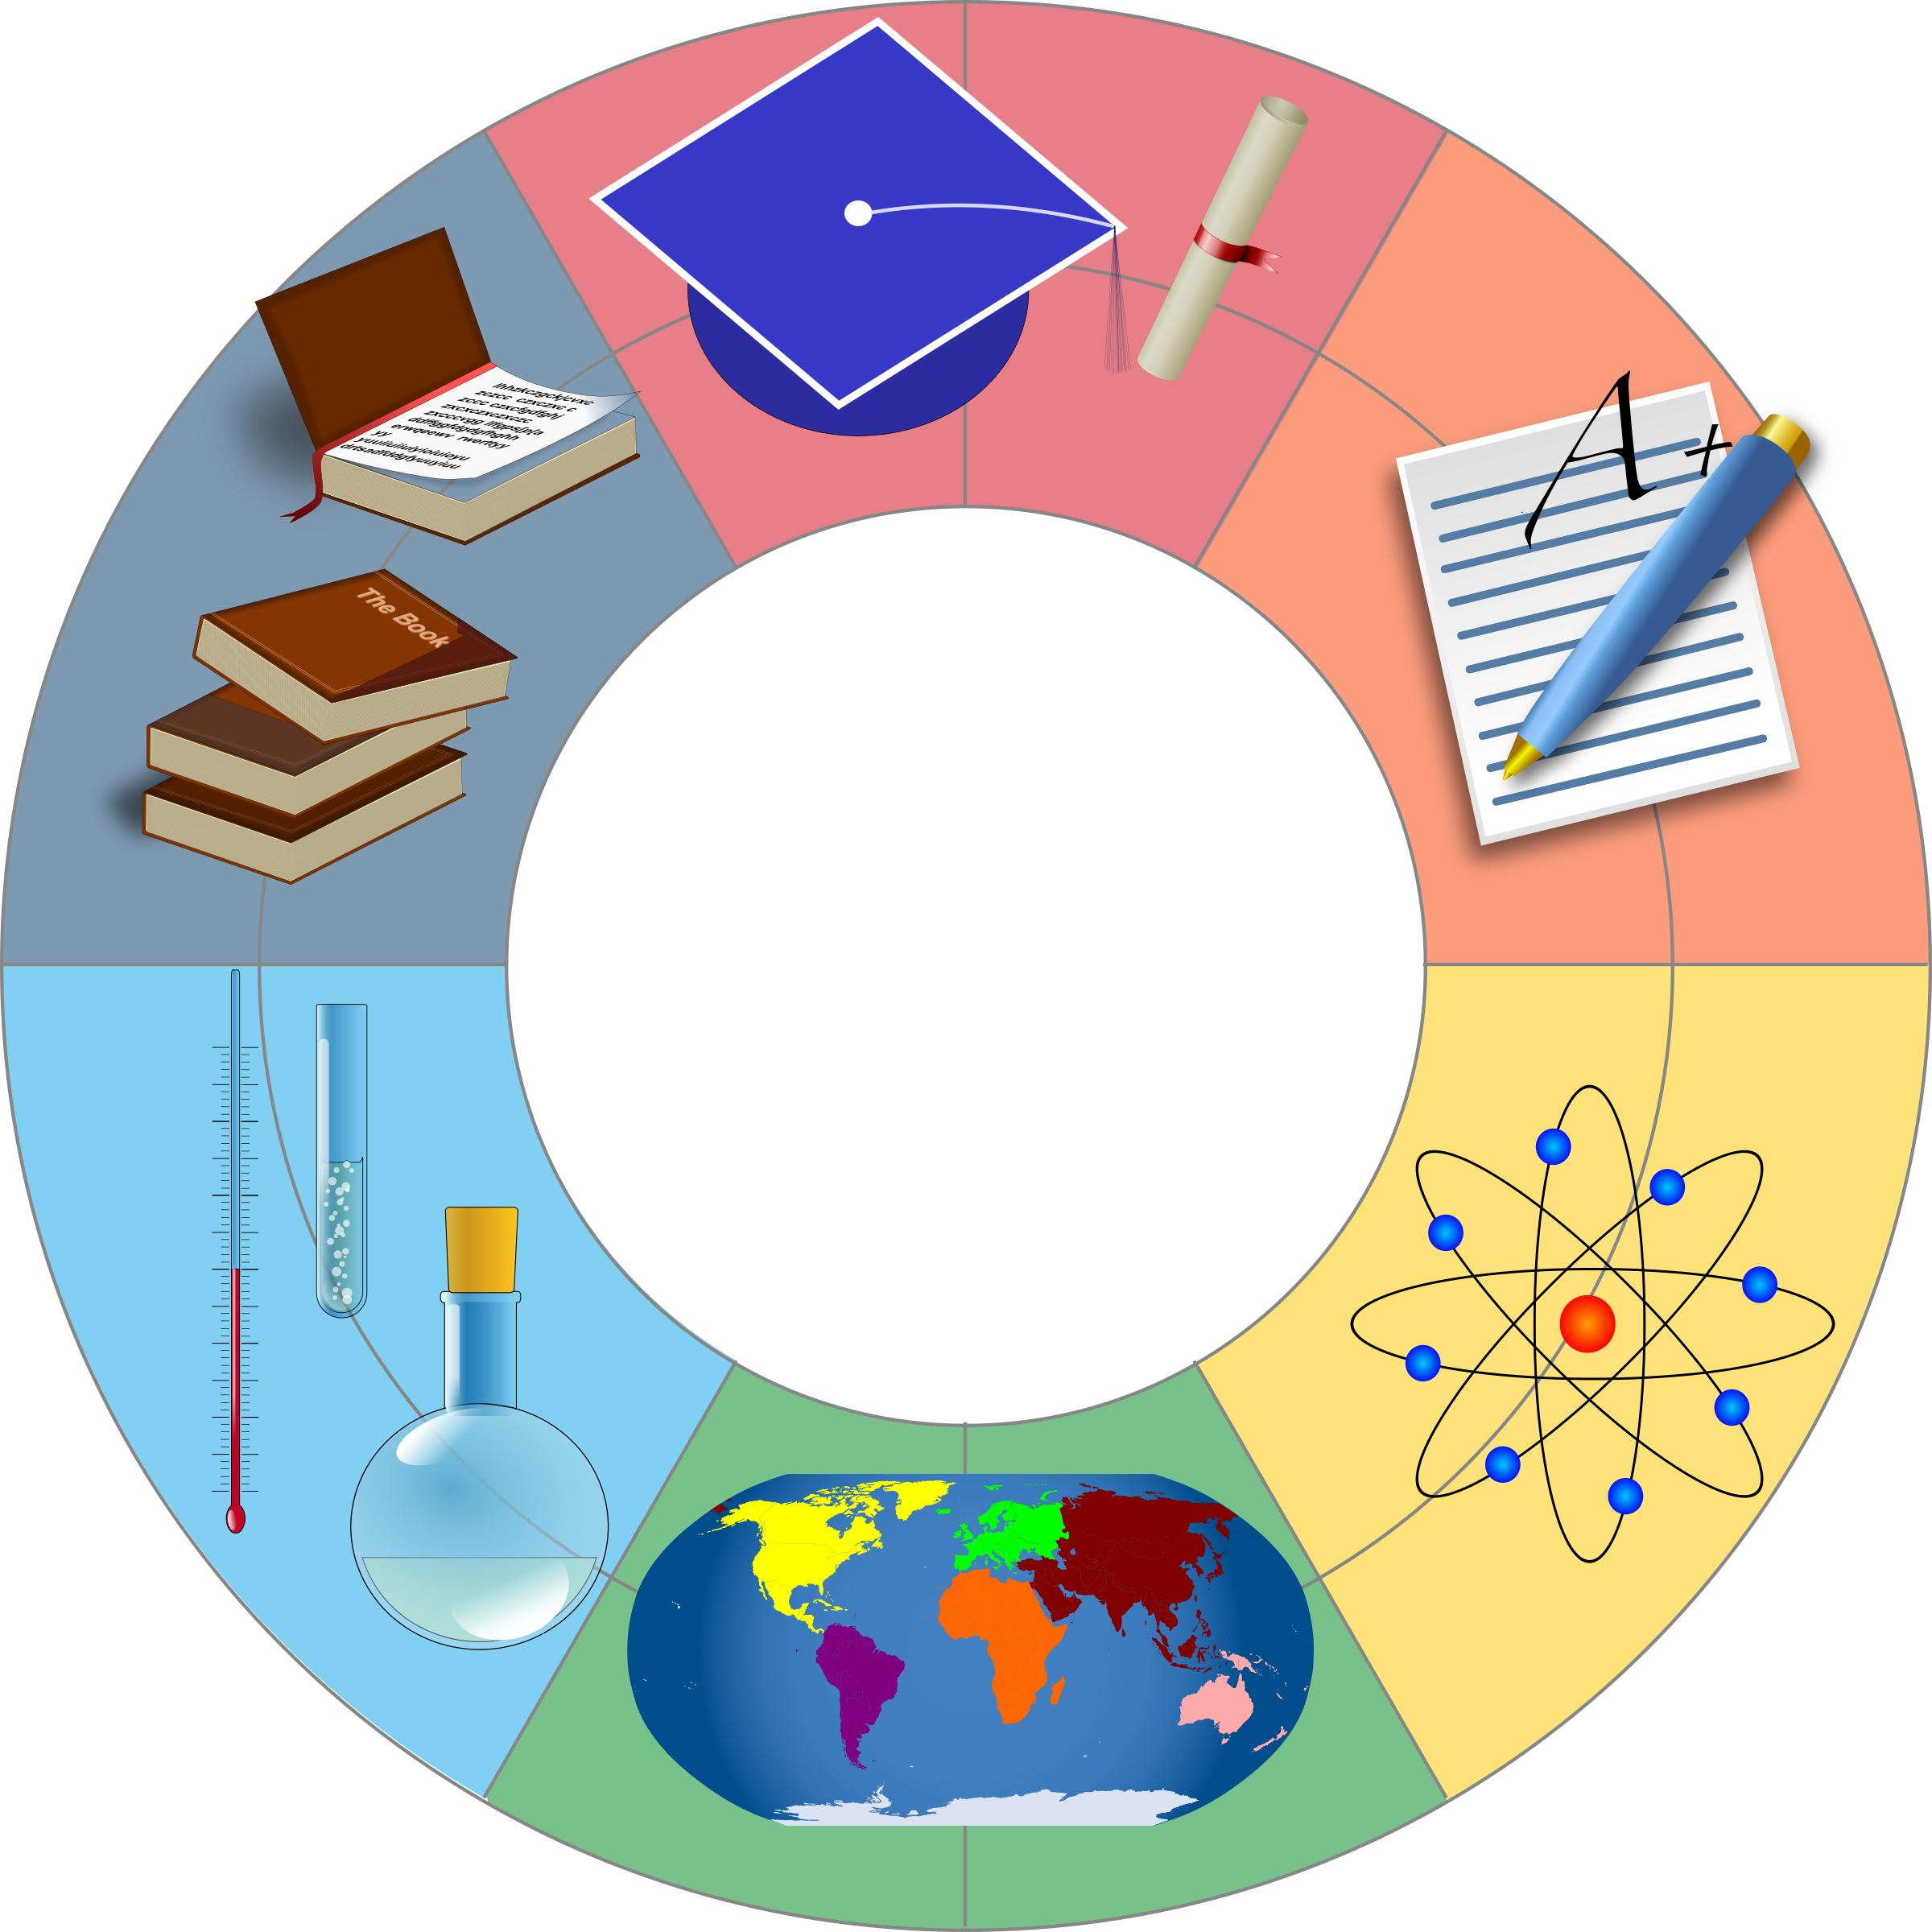 Various education images in circle